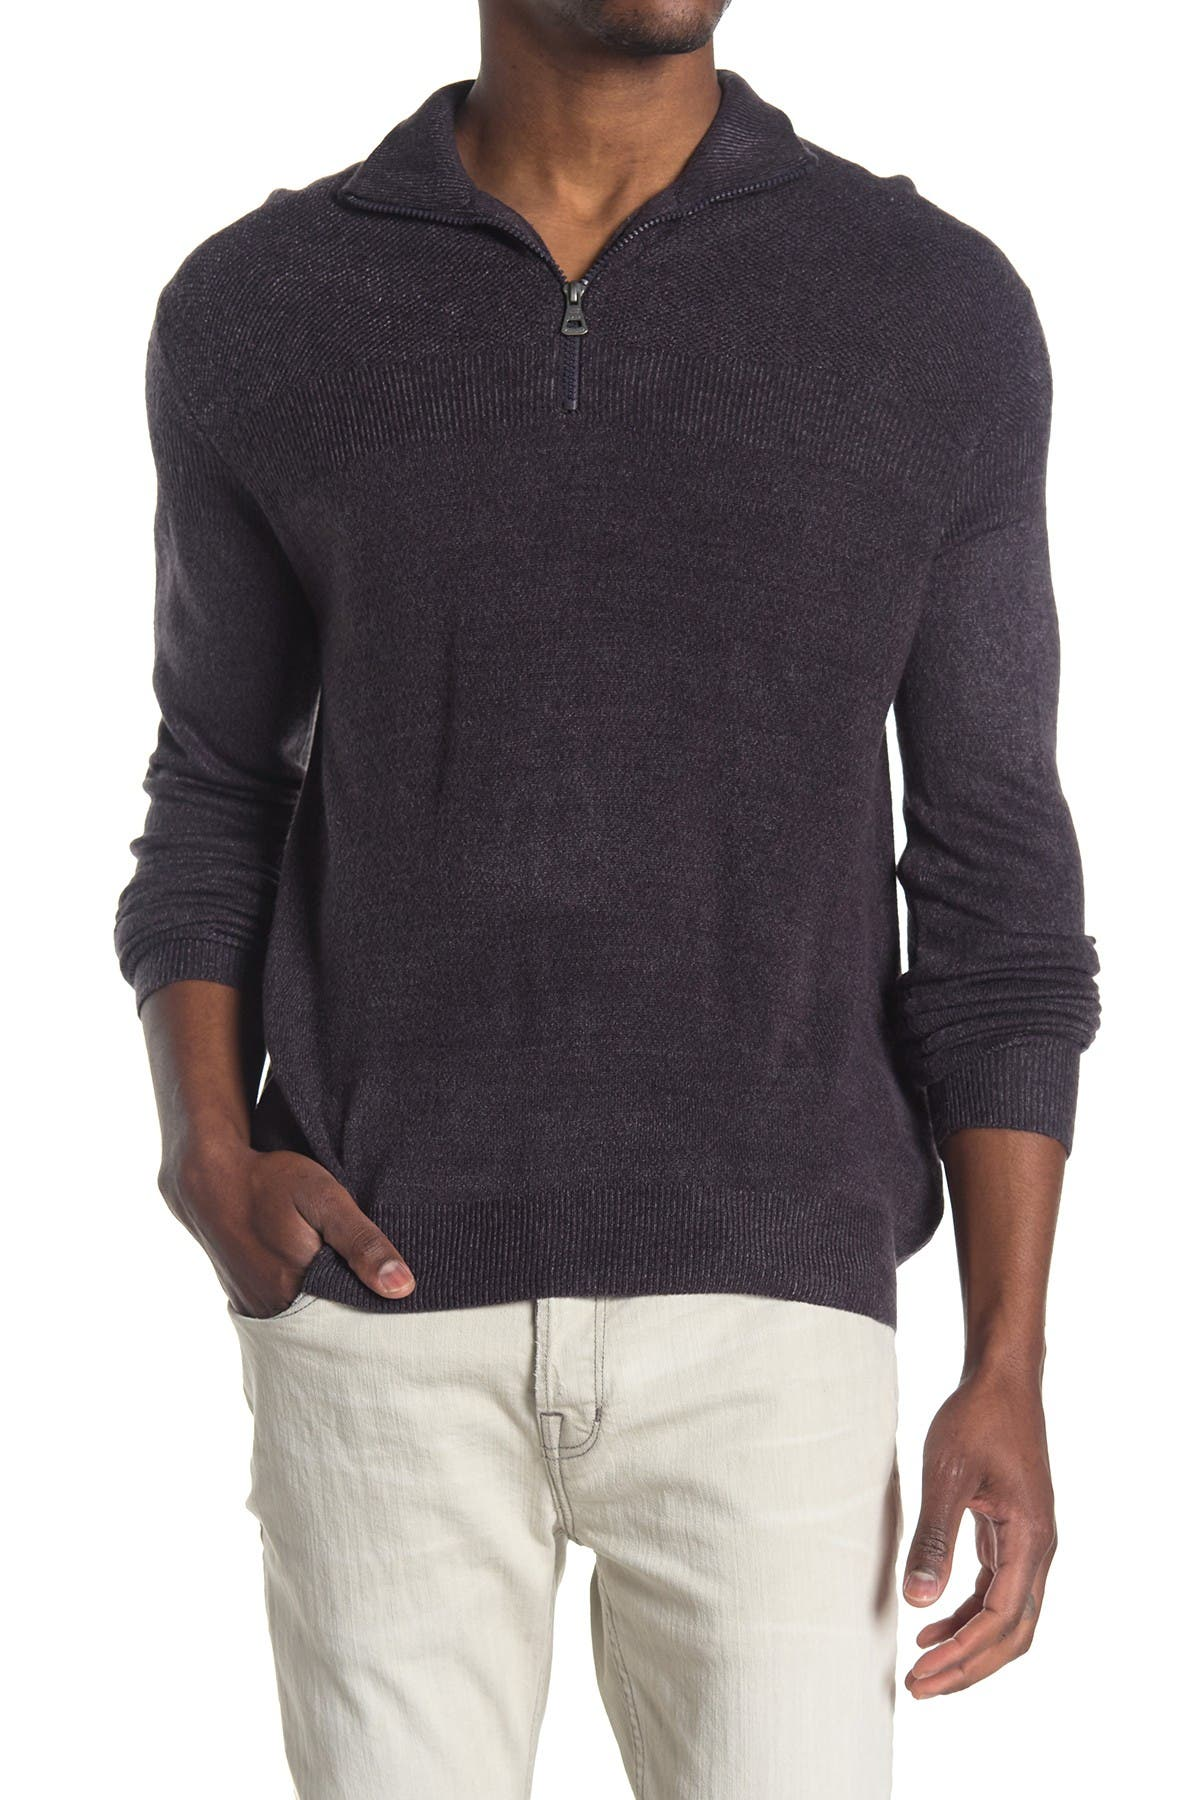 Image of weatherproof Soft Touch 1/4 Zip Sweater